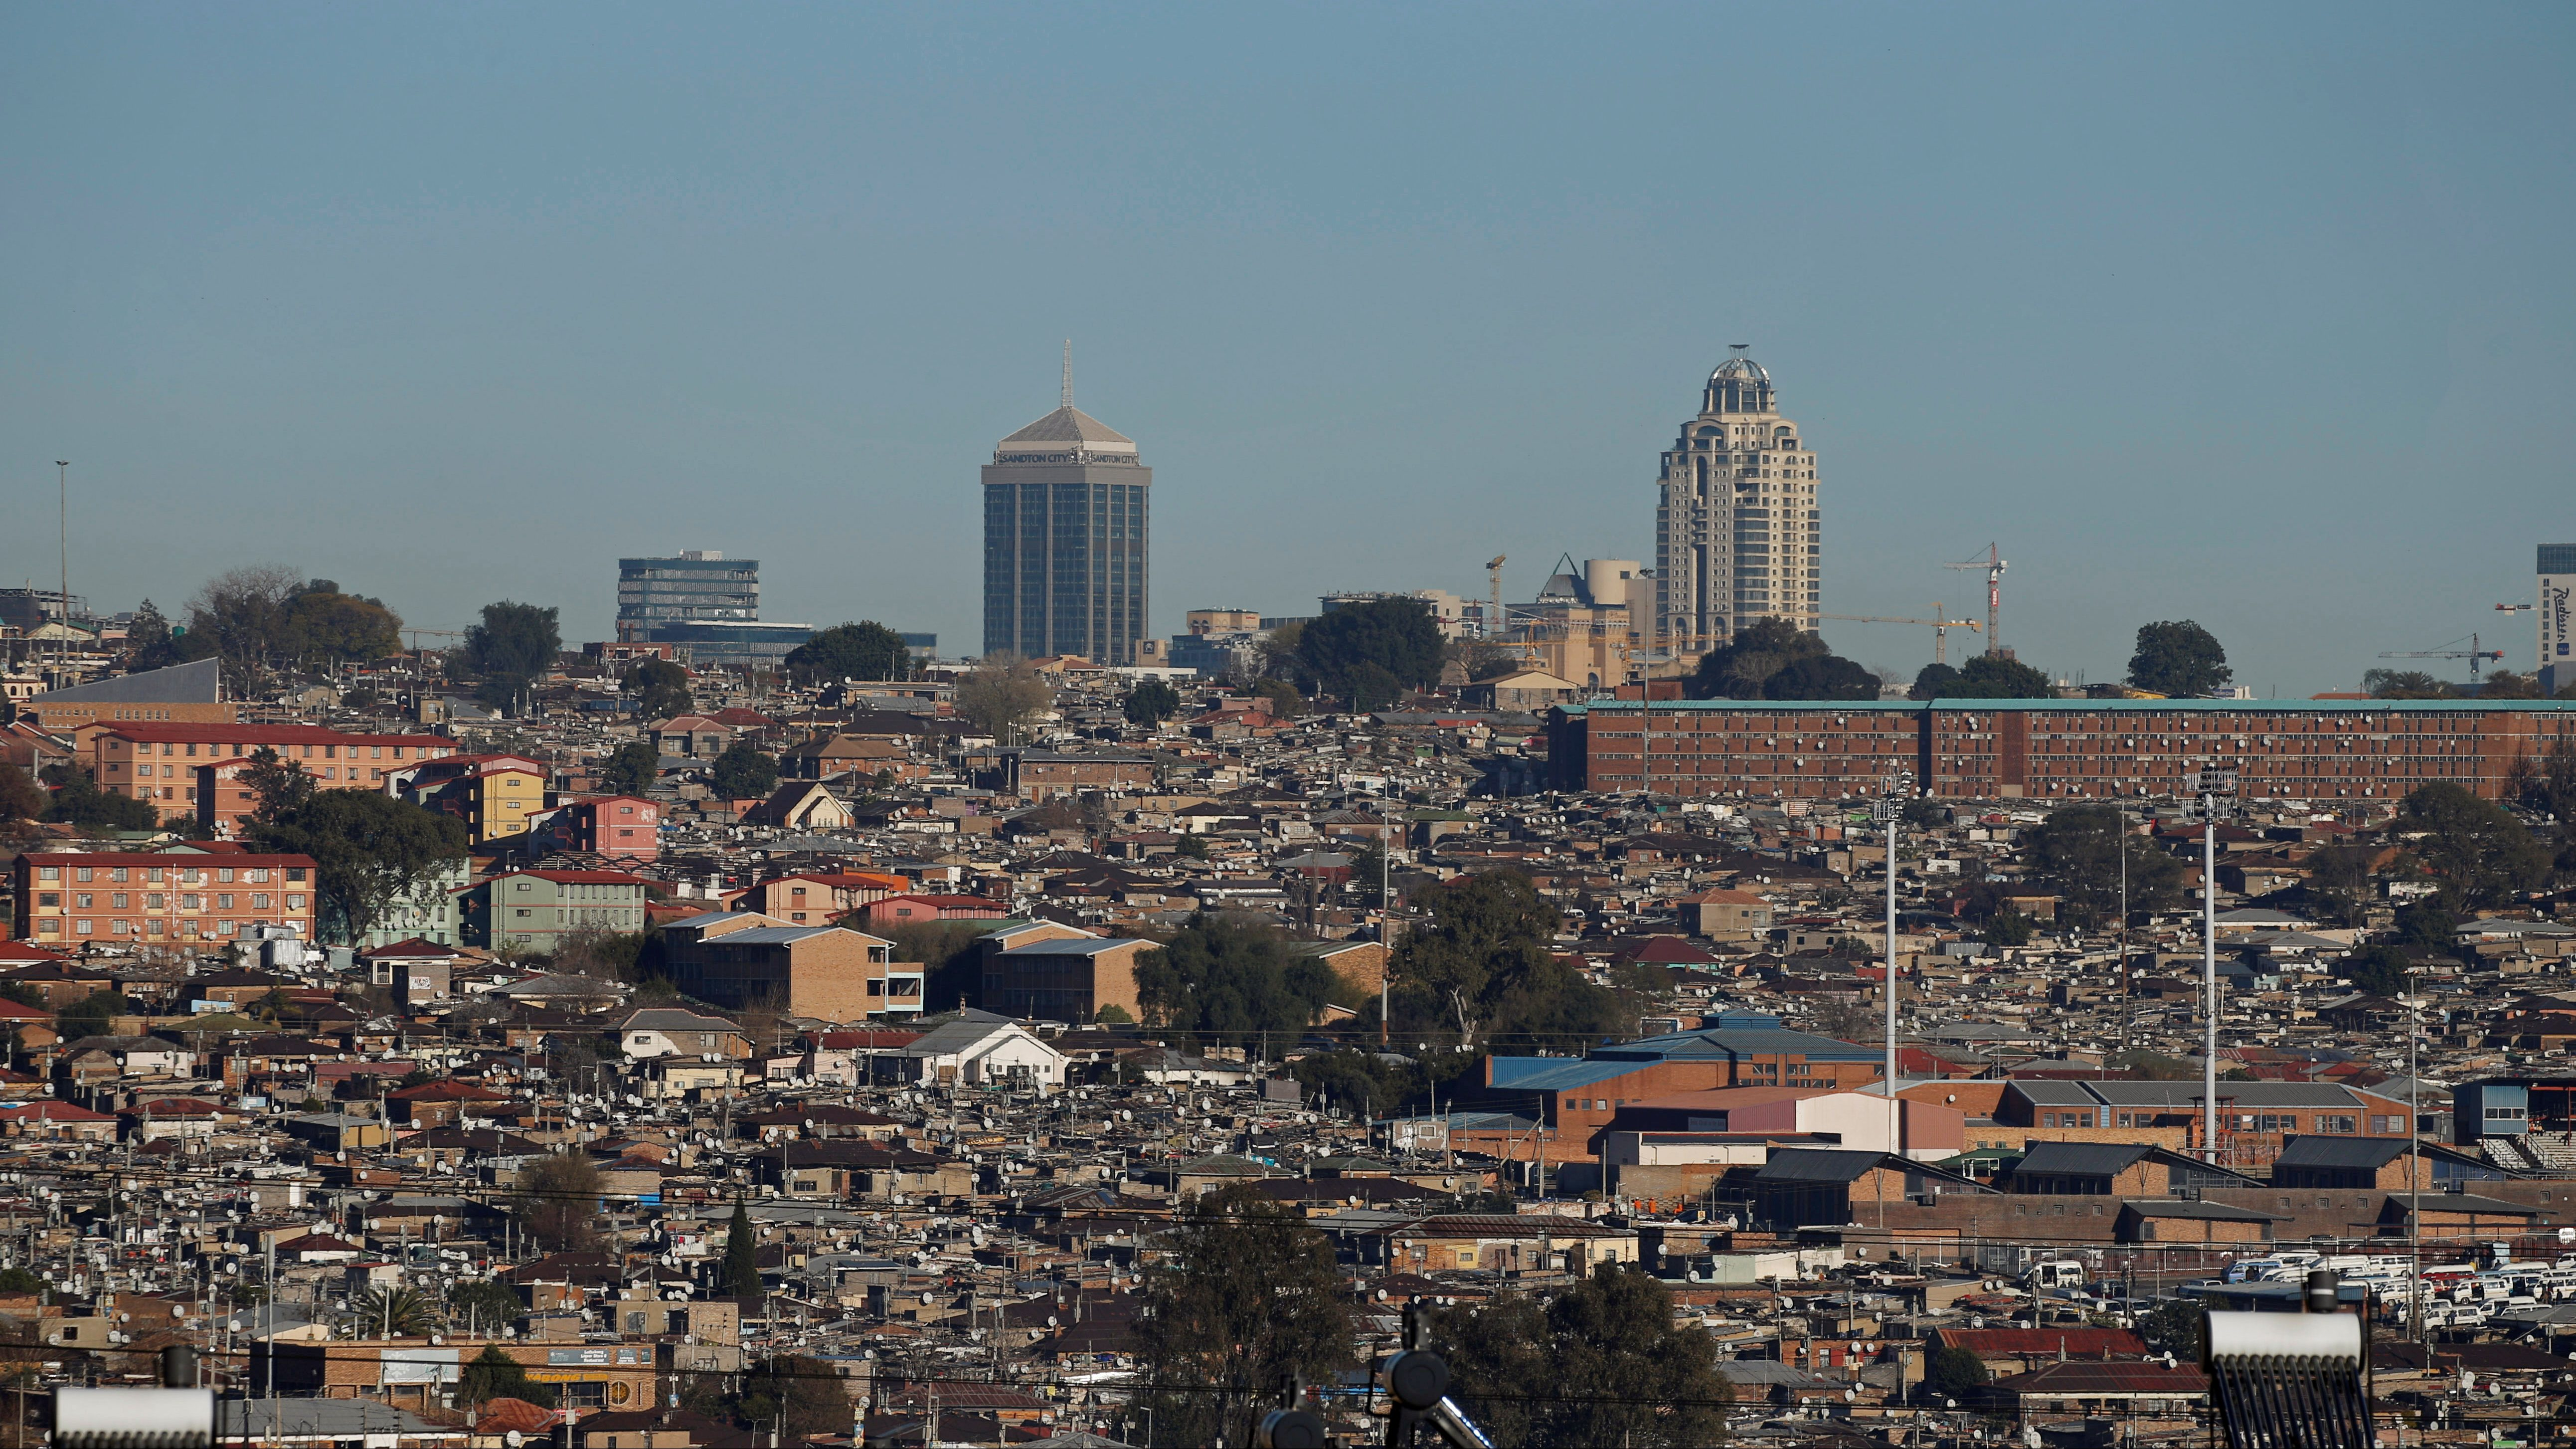 A view of Alexandra Township, an informal settlement in Johannesburg's suburbs for thousands of South Africans without a proper home